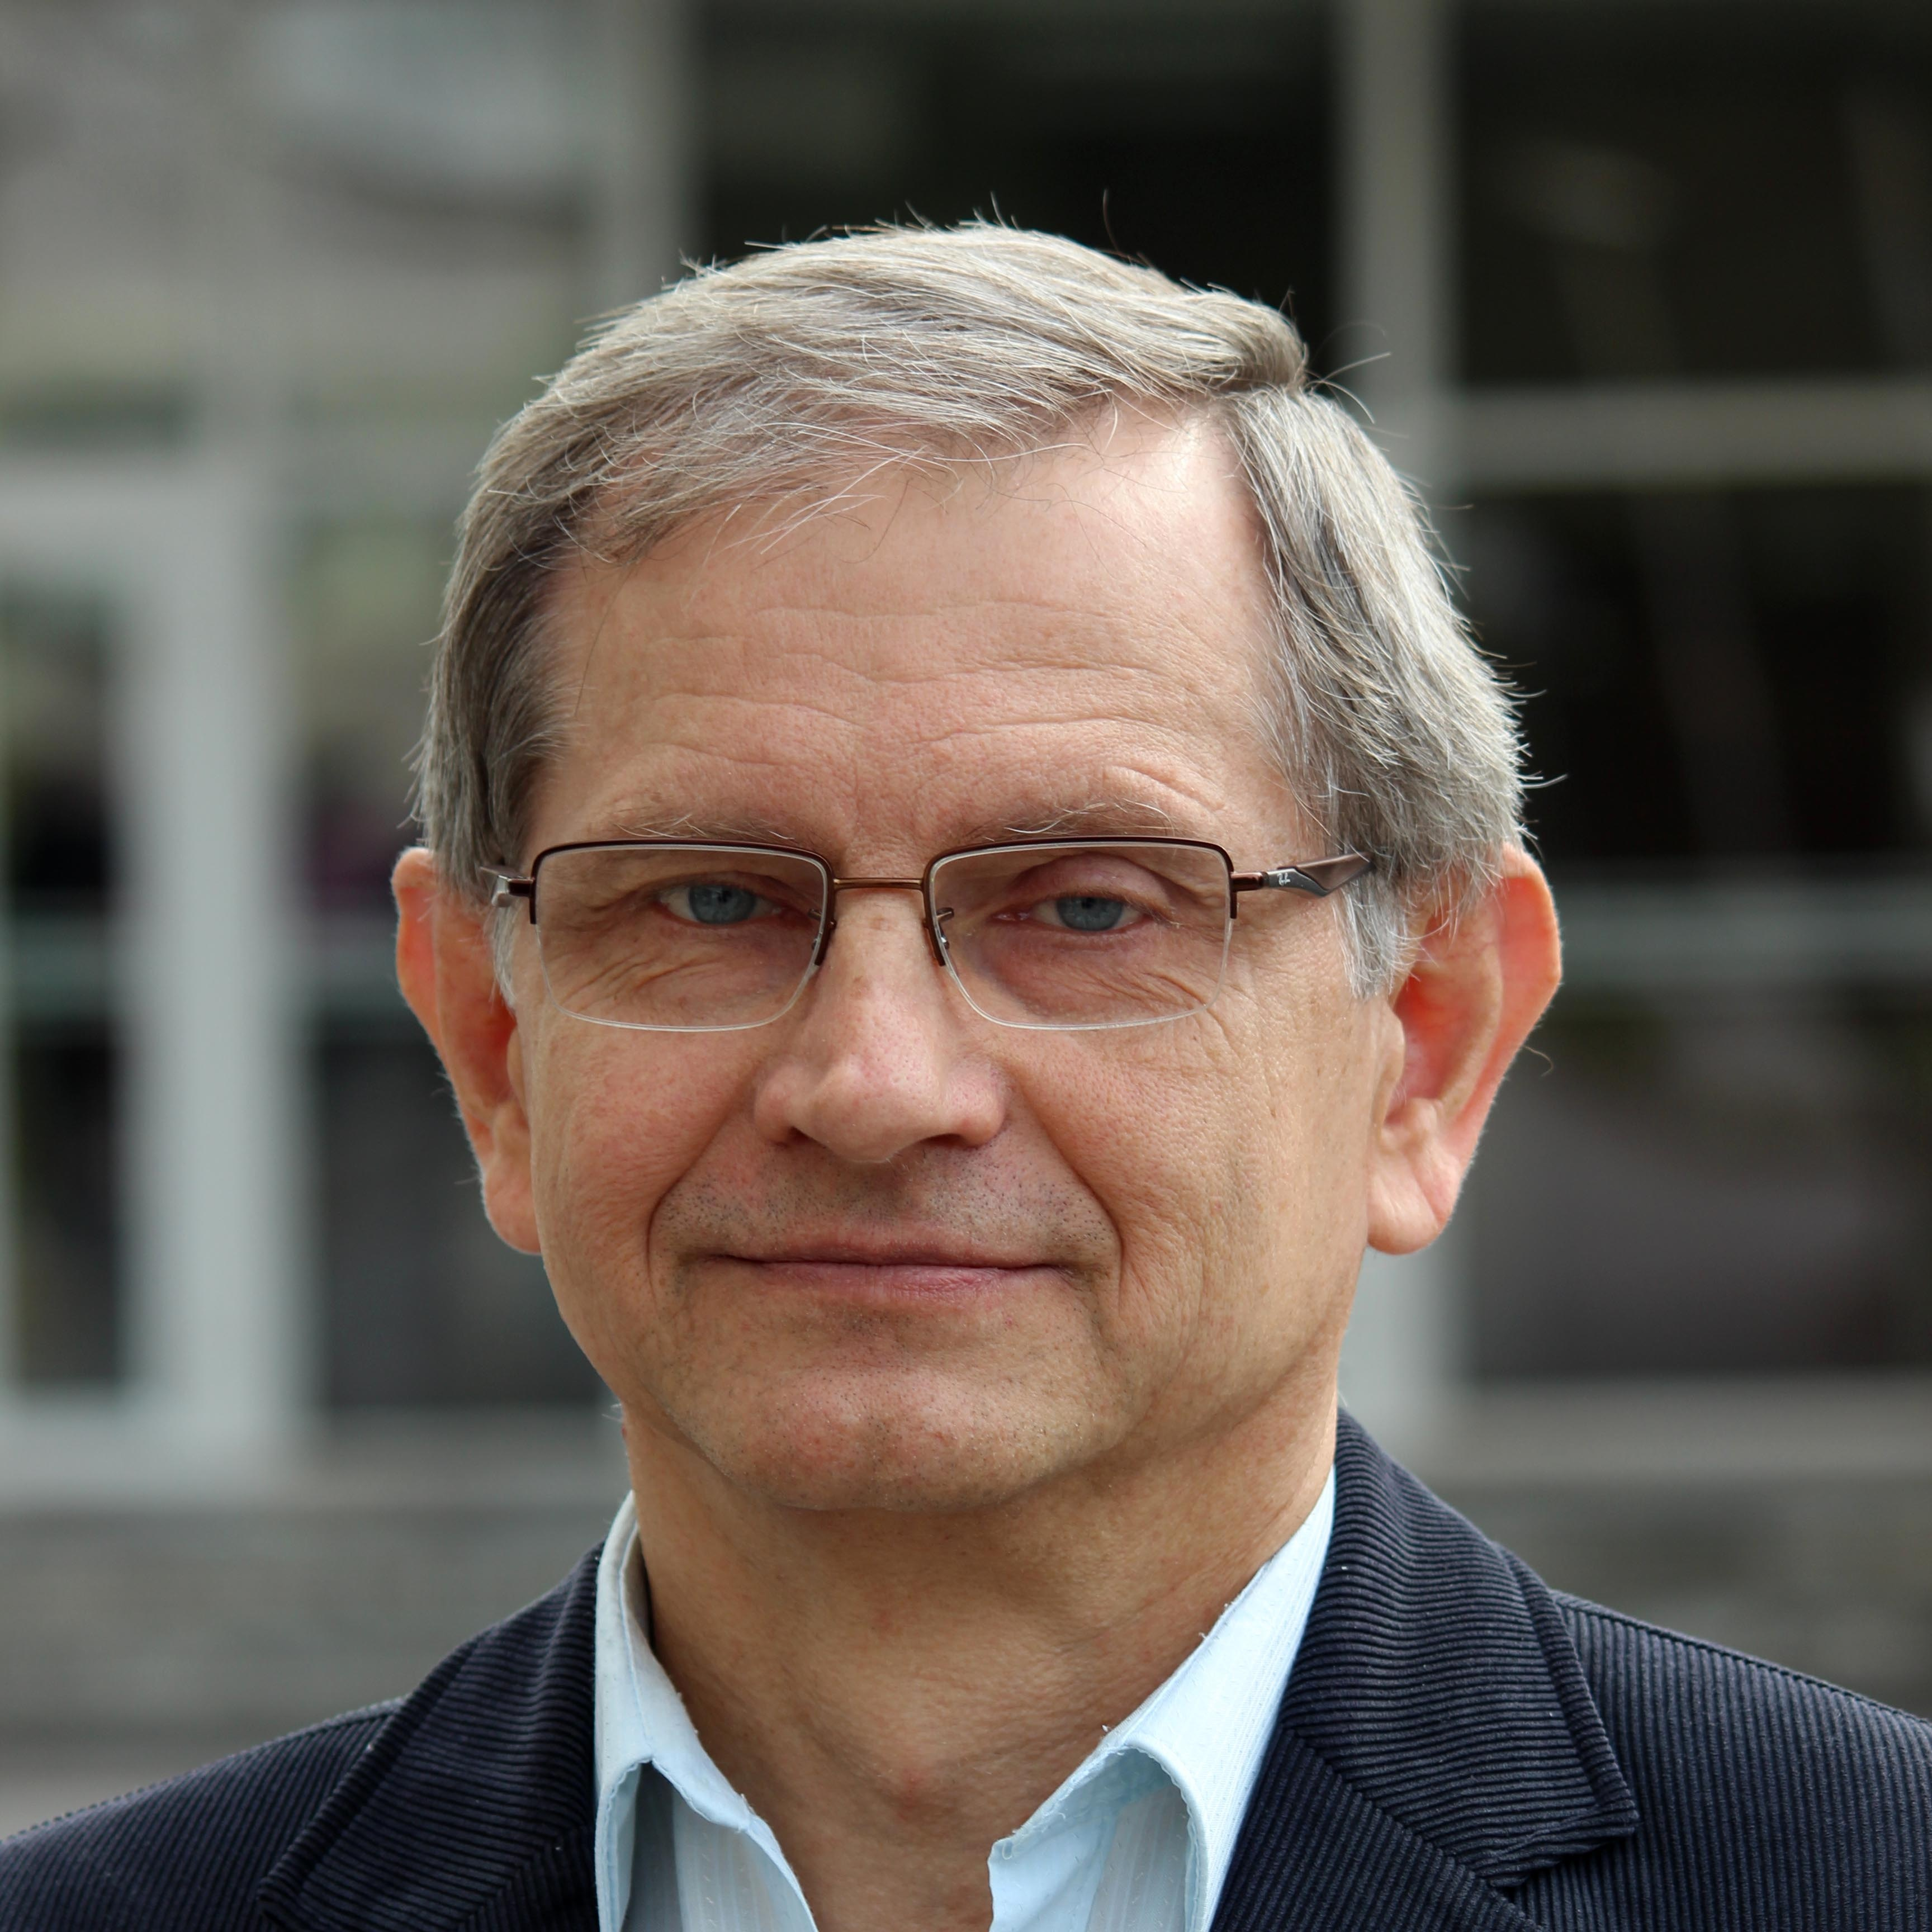 prof. RNDr. Ľubomír Snoha, DSc., DrSc. | Faculty of Natural Sciences University of Matej Bel